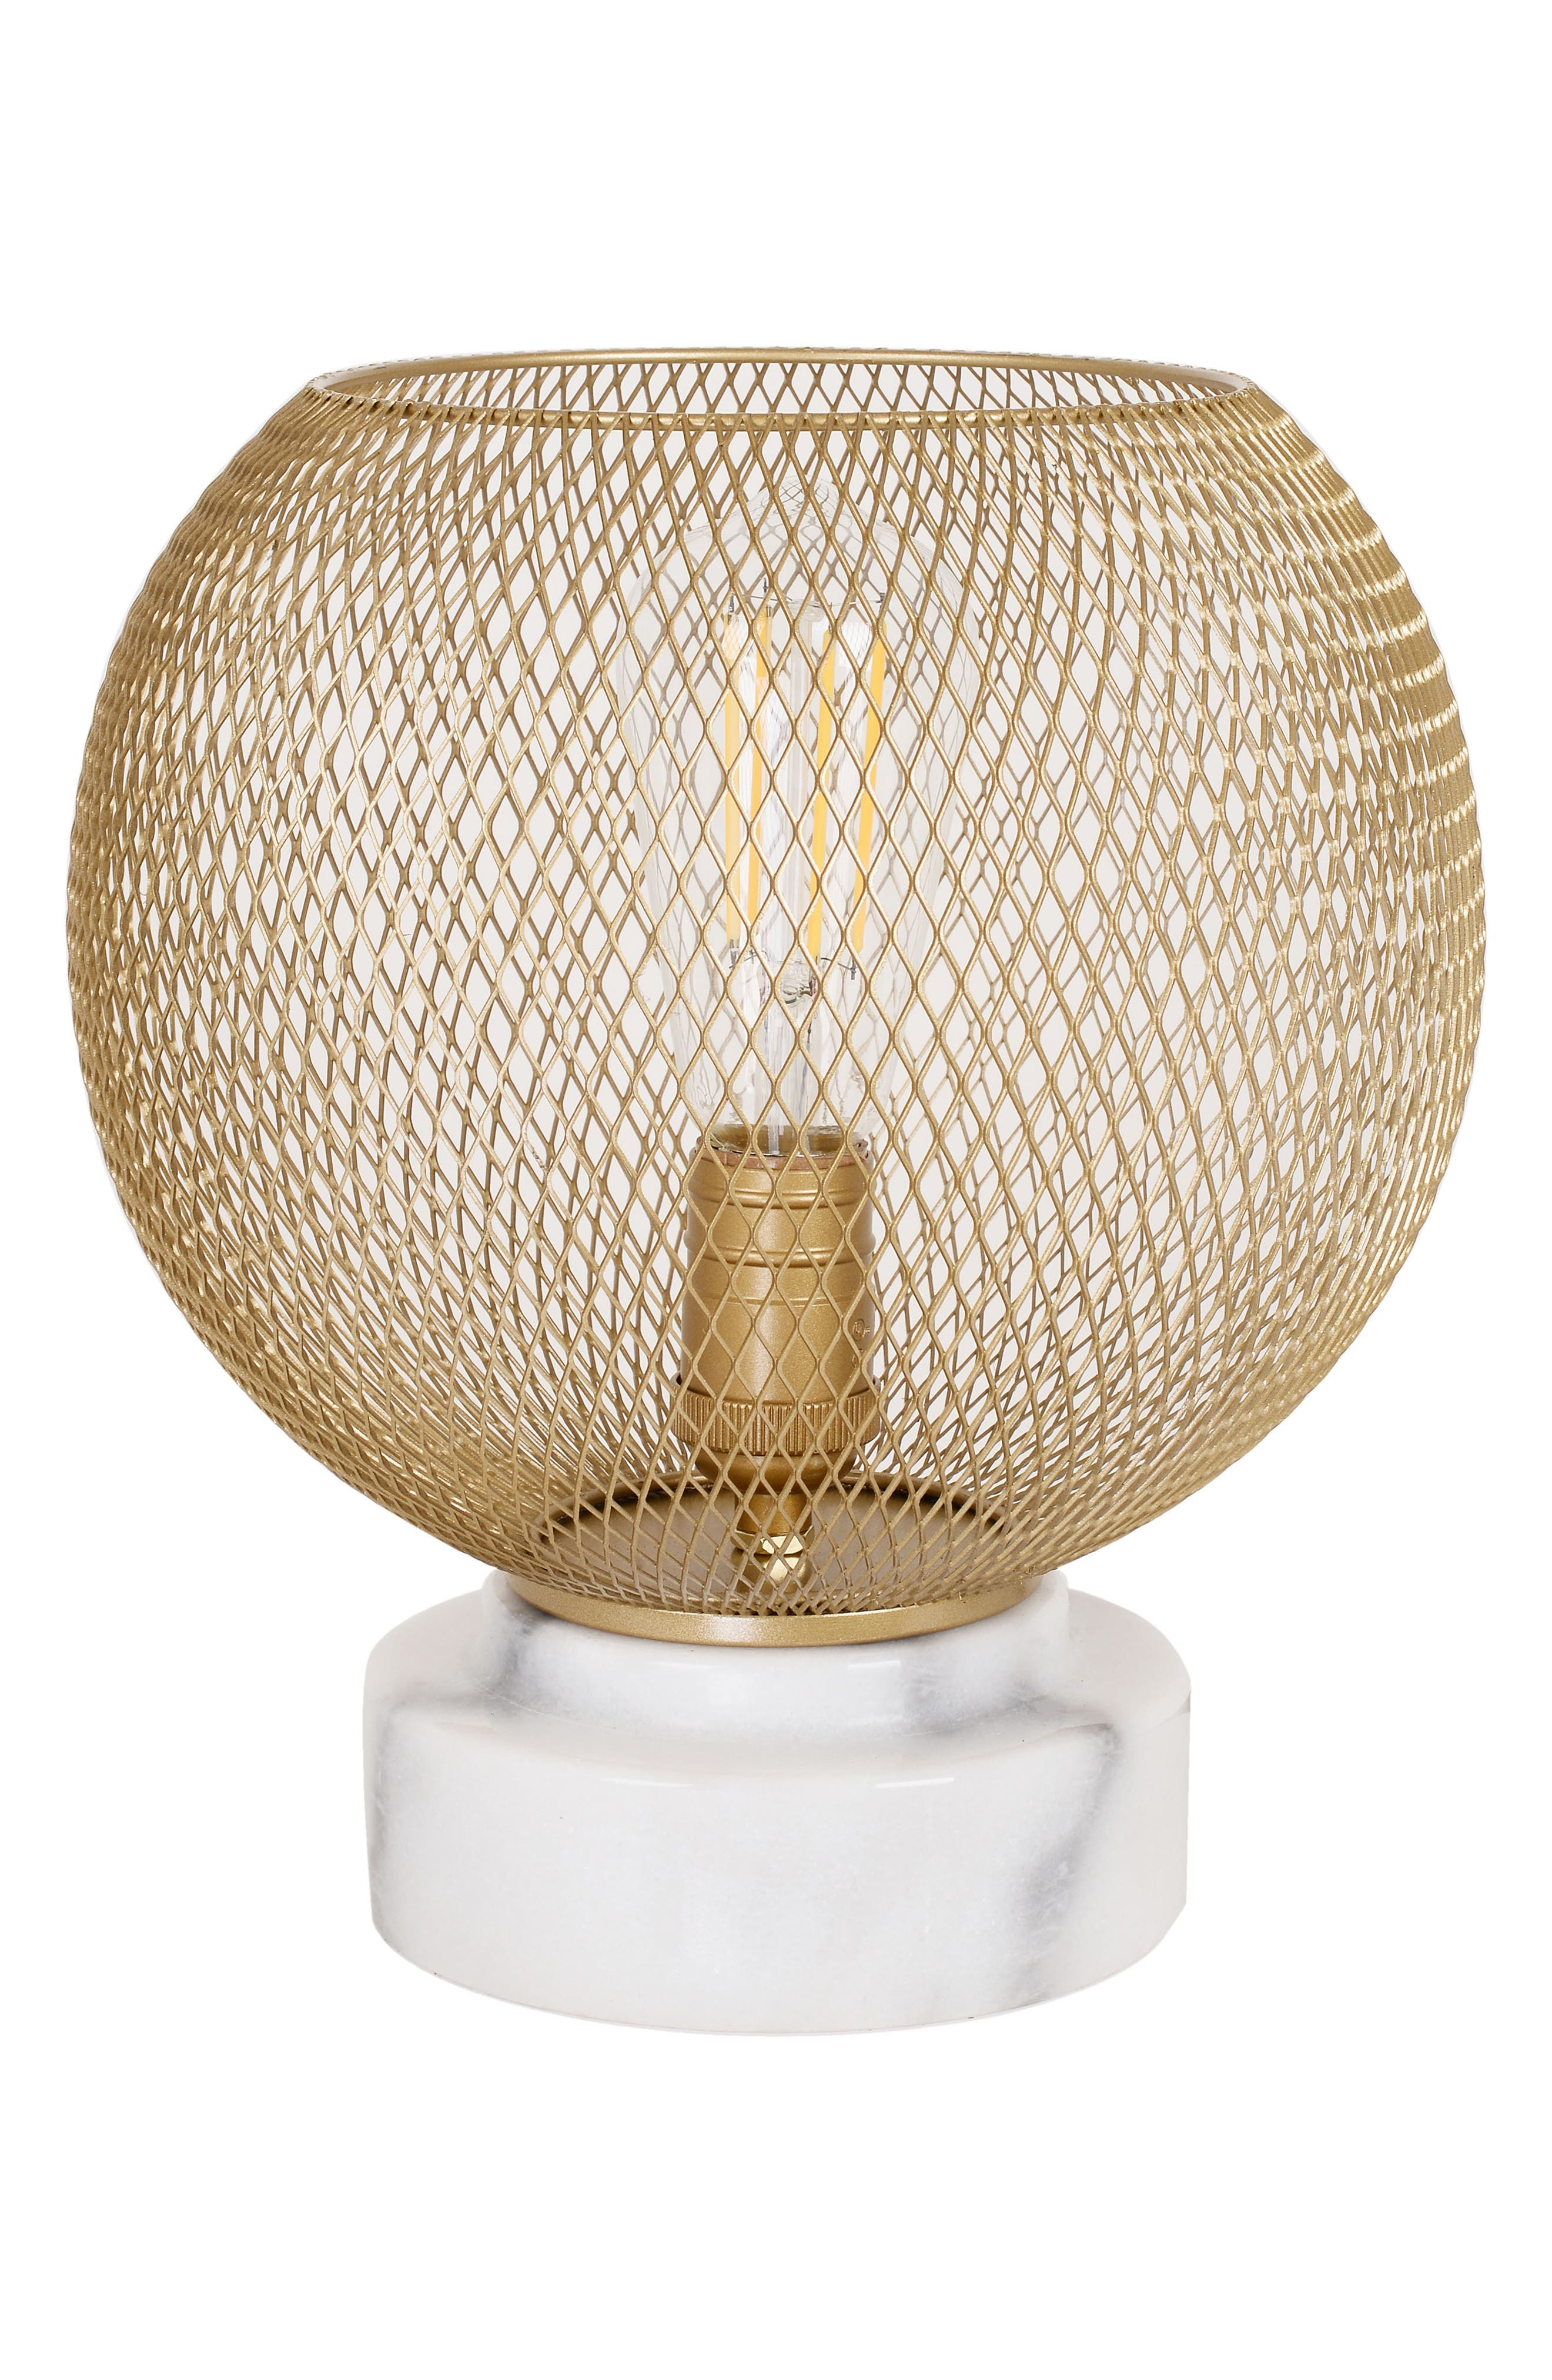 Mesh & Marble Uplight Lamp,                         Main,                         color, 710